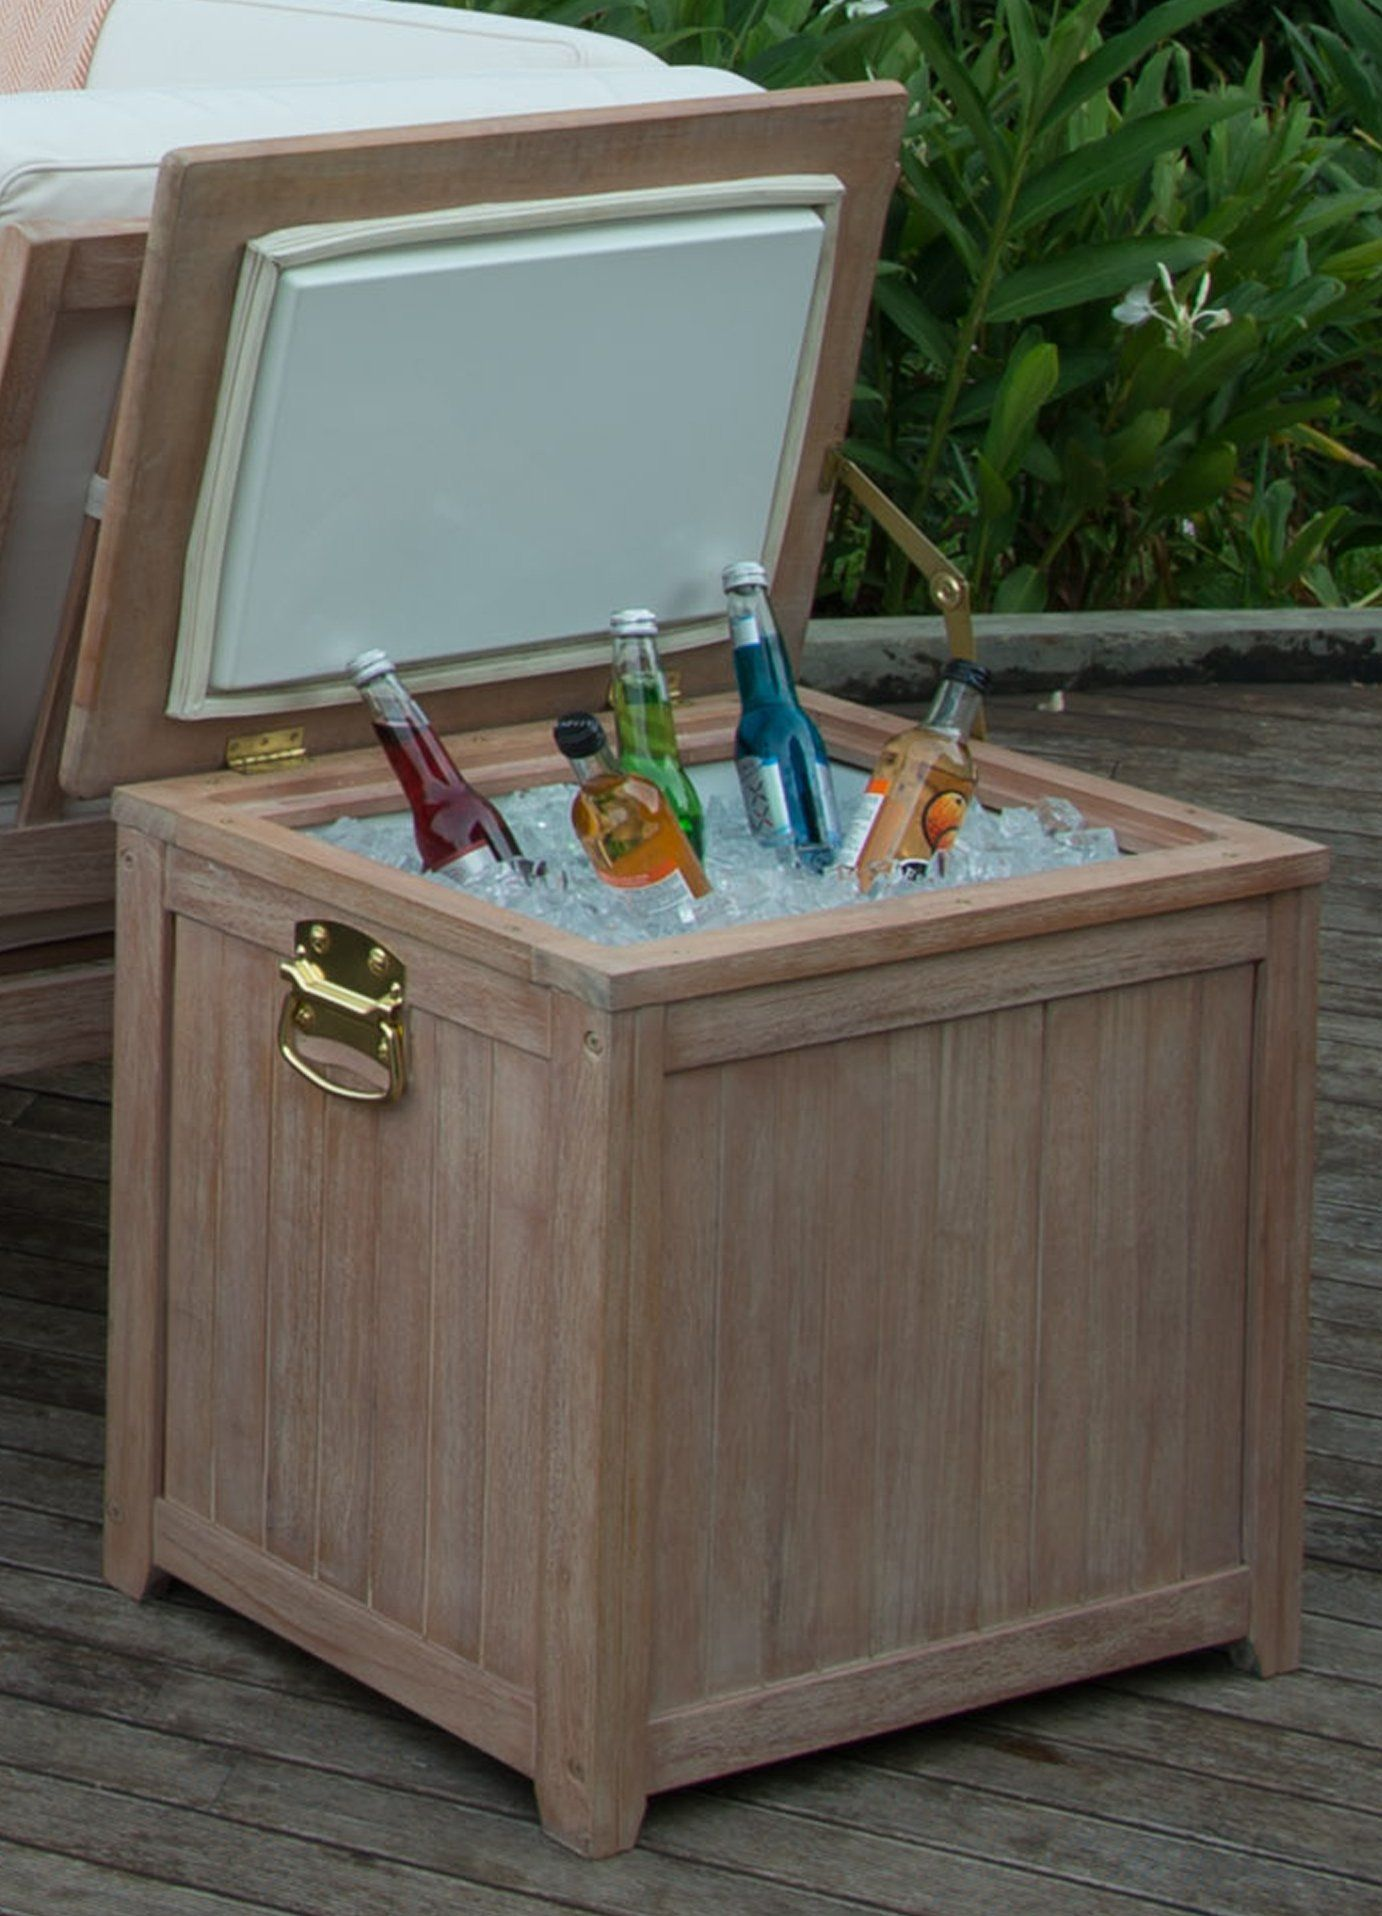 Cambridgecasual willow wooden ice chest cooler weathered